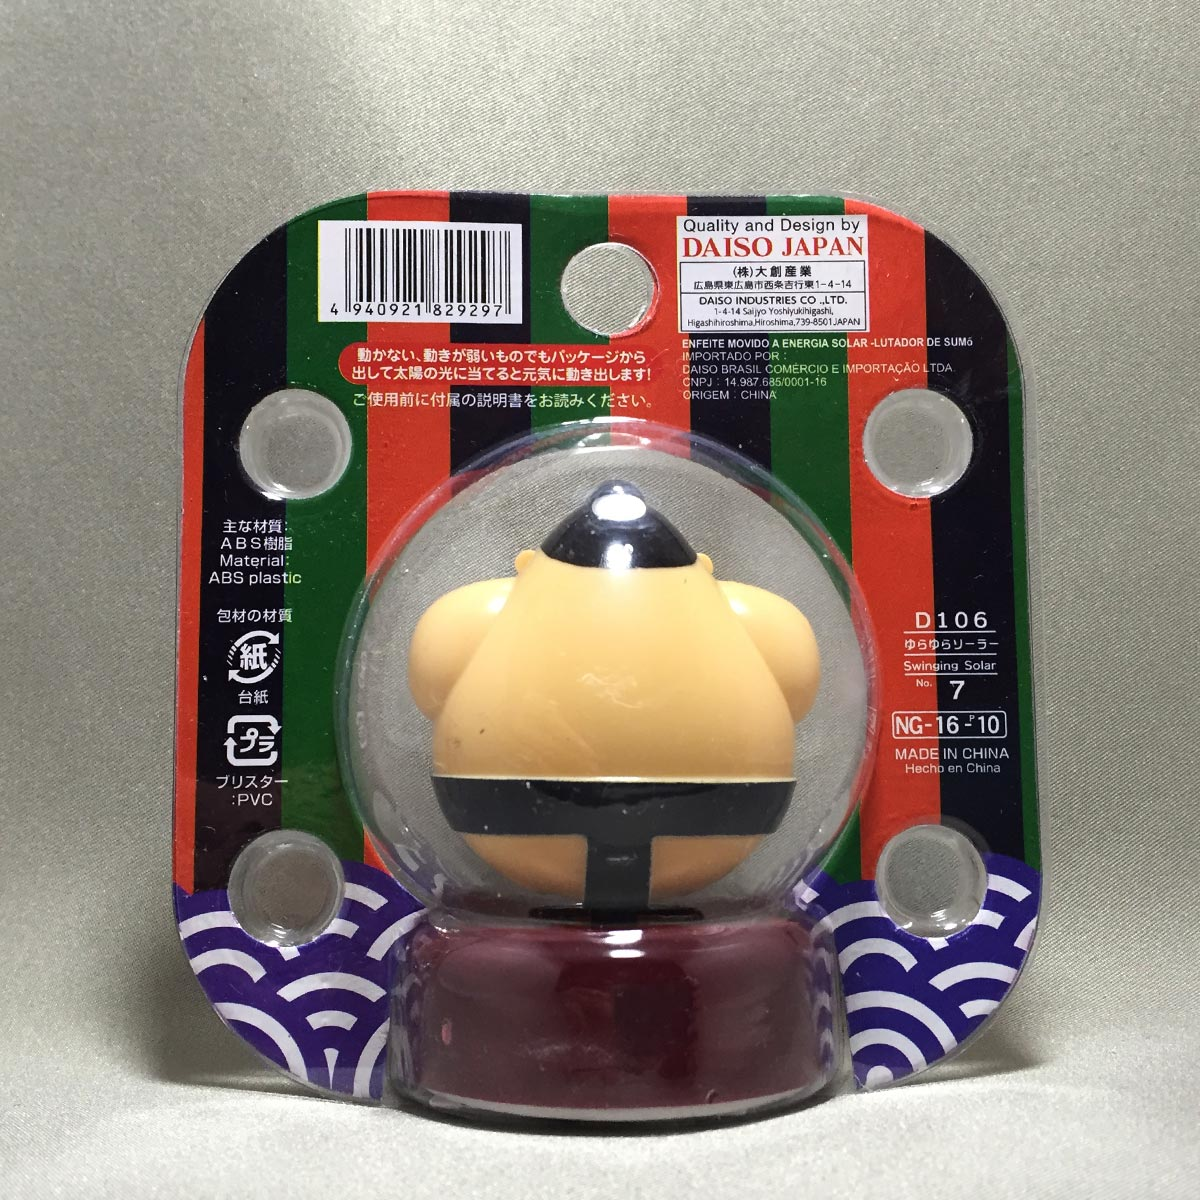 Solar Powered Swinging Sumo Wrestler - back packaging